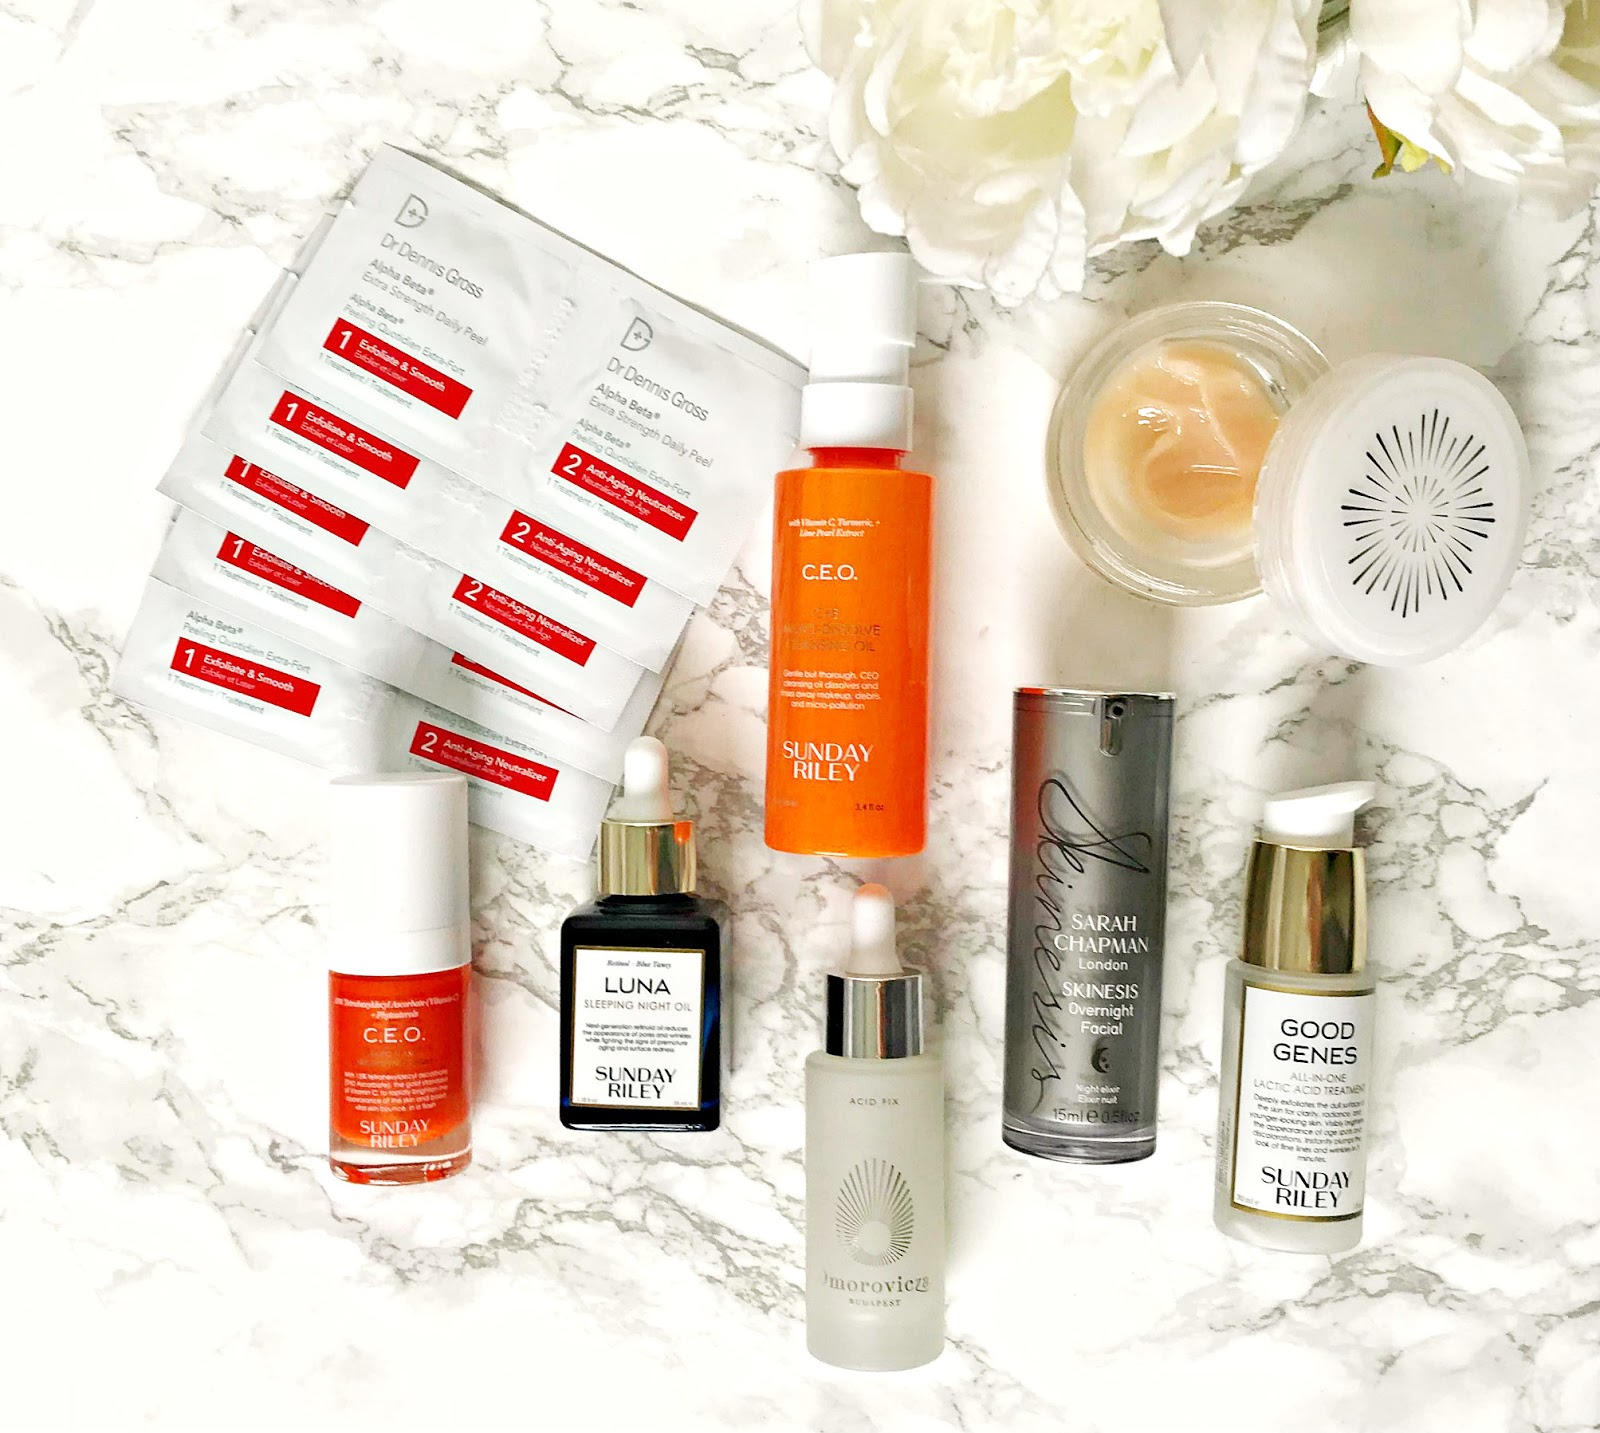 Cult Beauty Discount Code, Products for dull skin, Products for textured or scarred skin